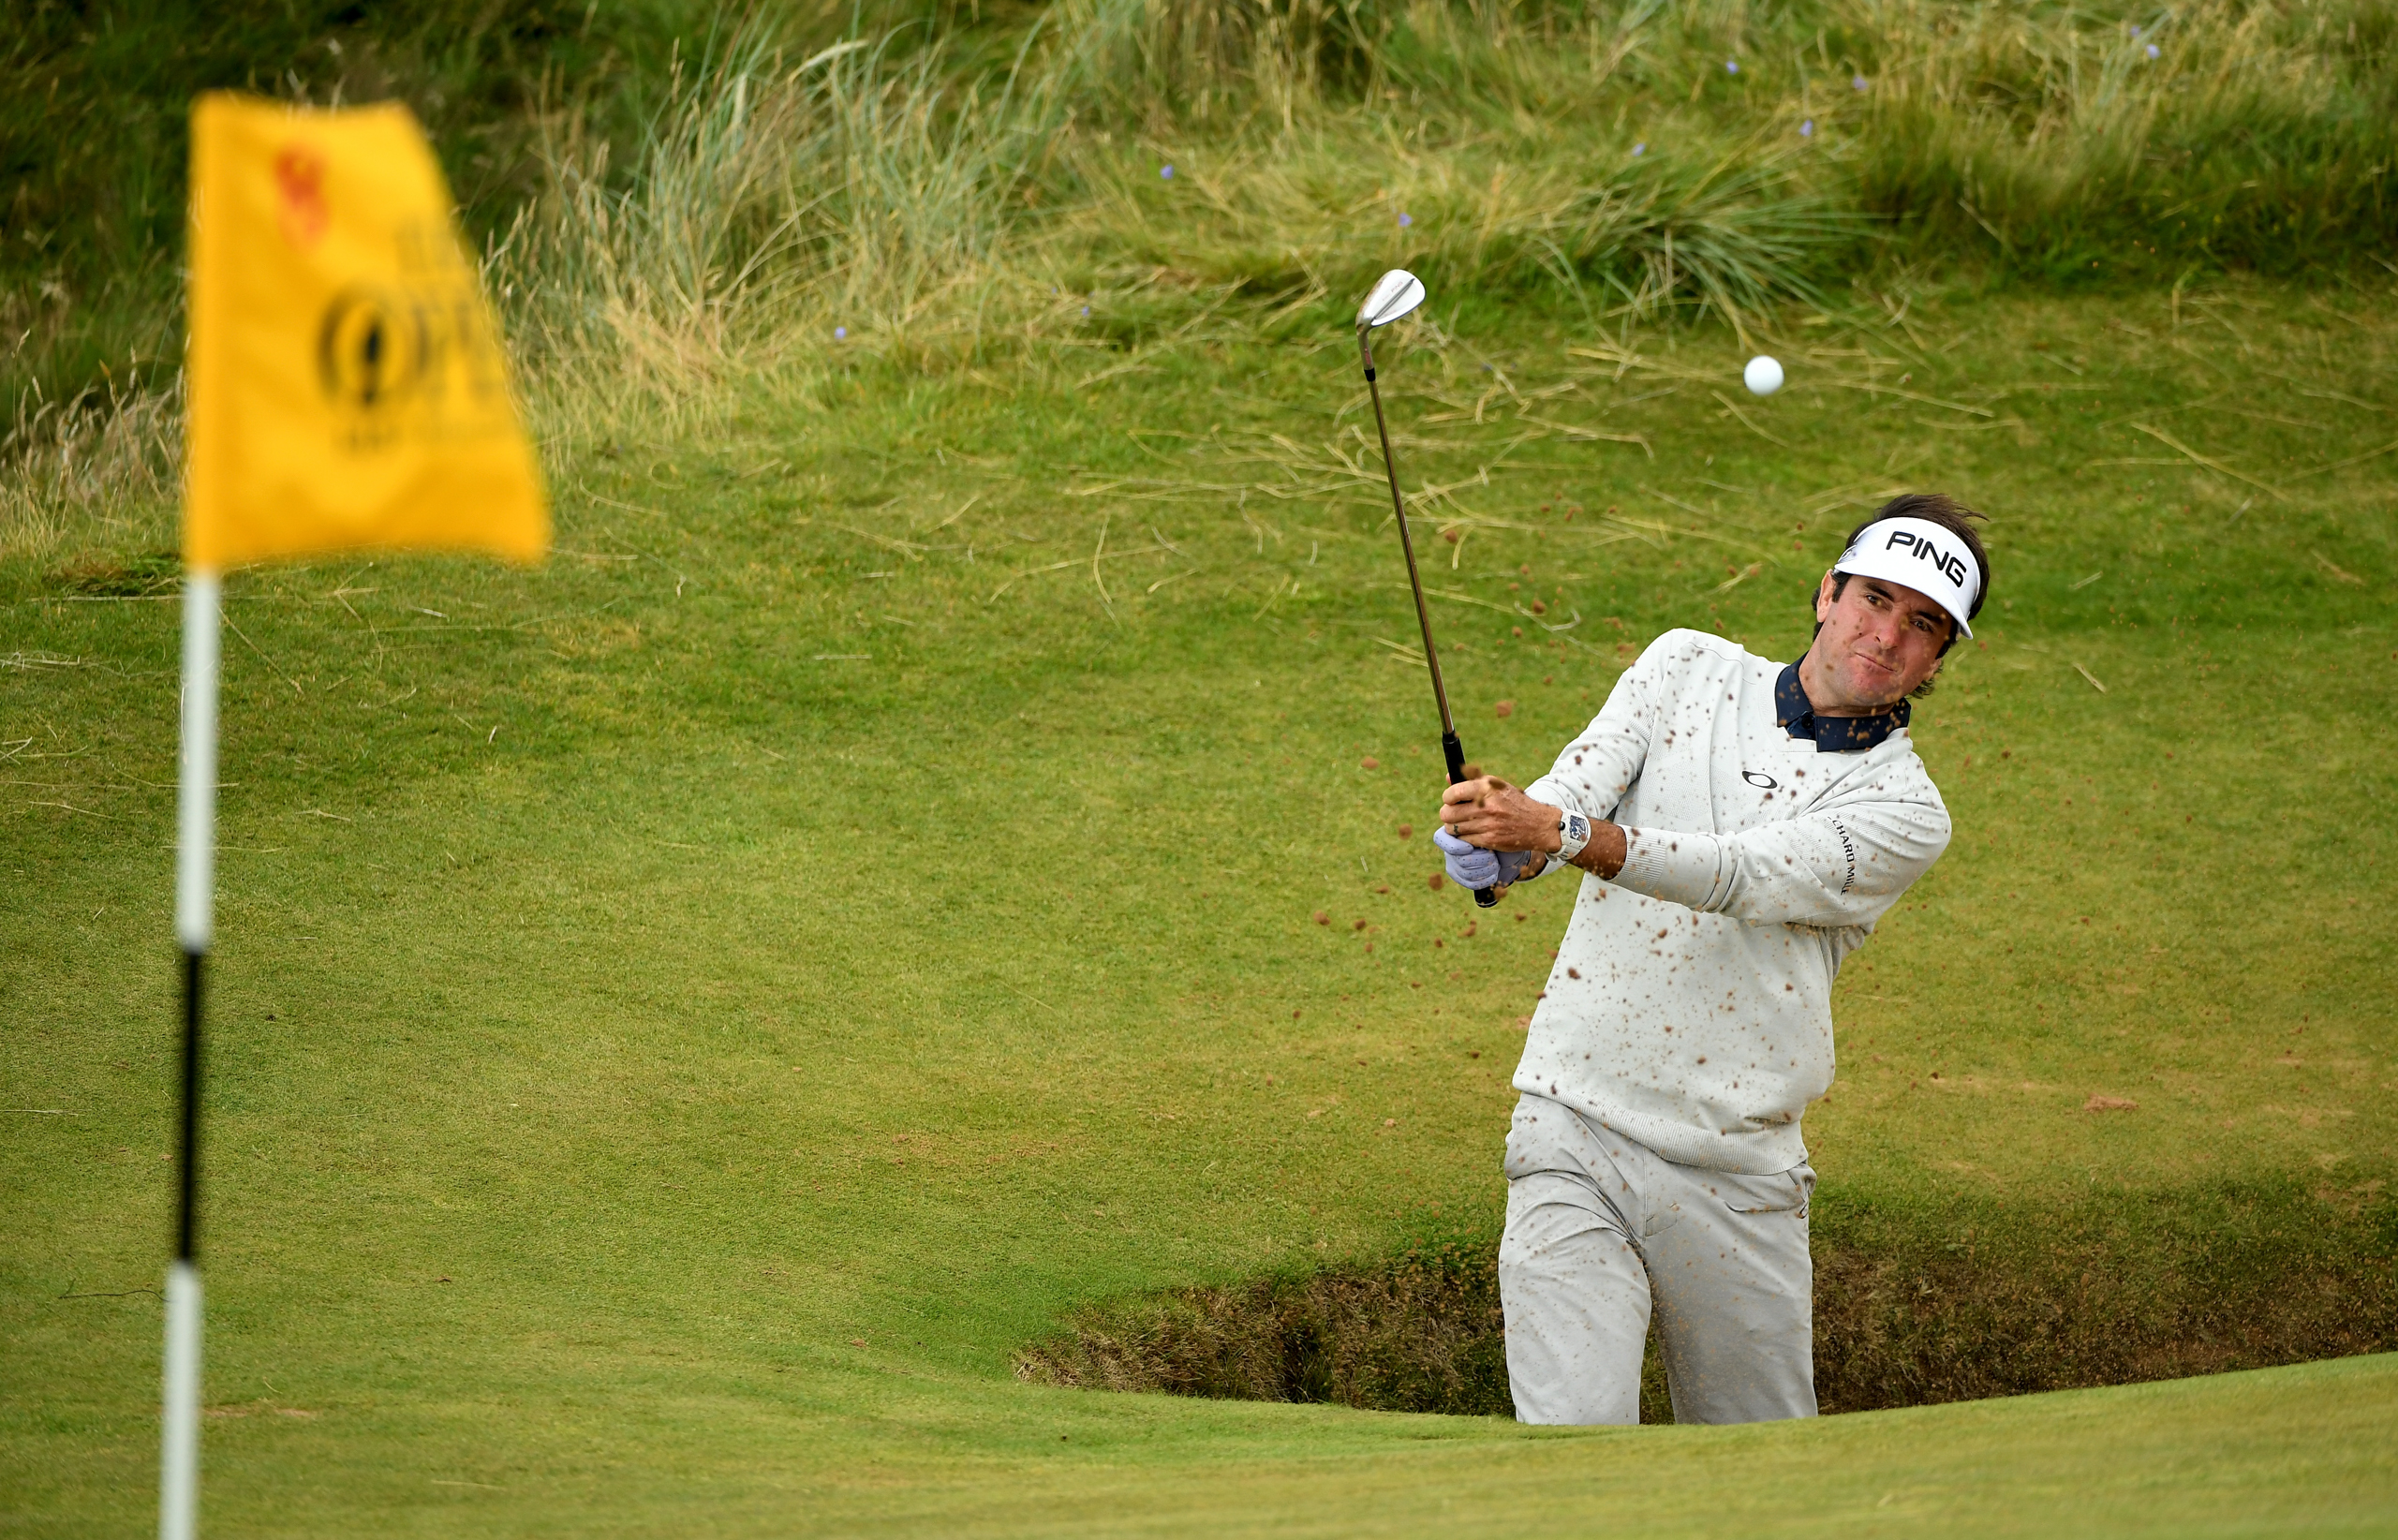 <strong>Bubba Watson, Golf, USA</strong>Golf returns to the Olympics for the first time in 112 years, and long-hitting lefty Watson will be the top-ranked player after fellow major winners Rory McIlroy, Jason Day, Jordan Spieth and Dustin Johnson pulled out.